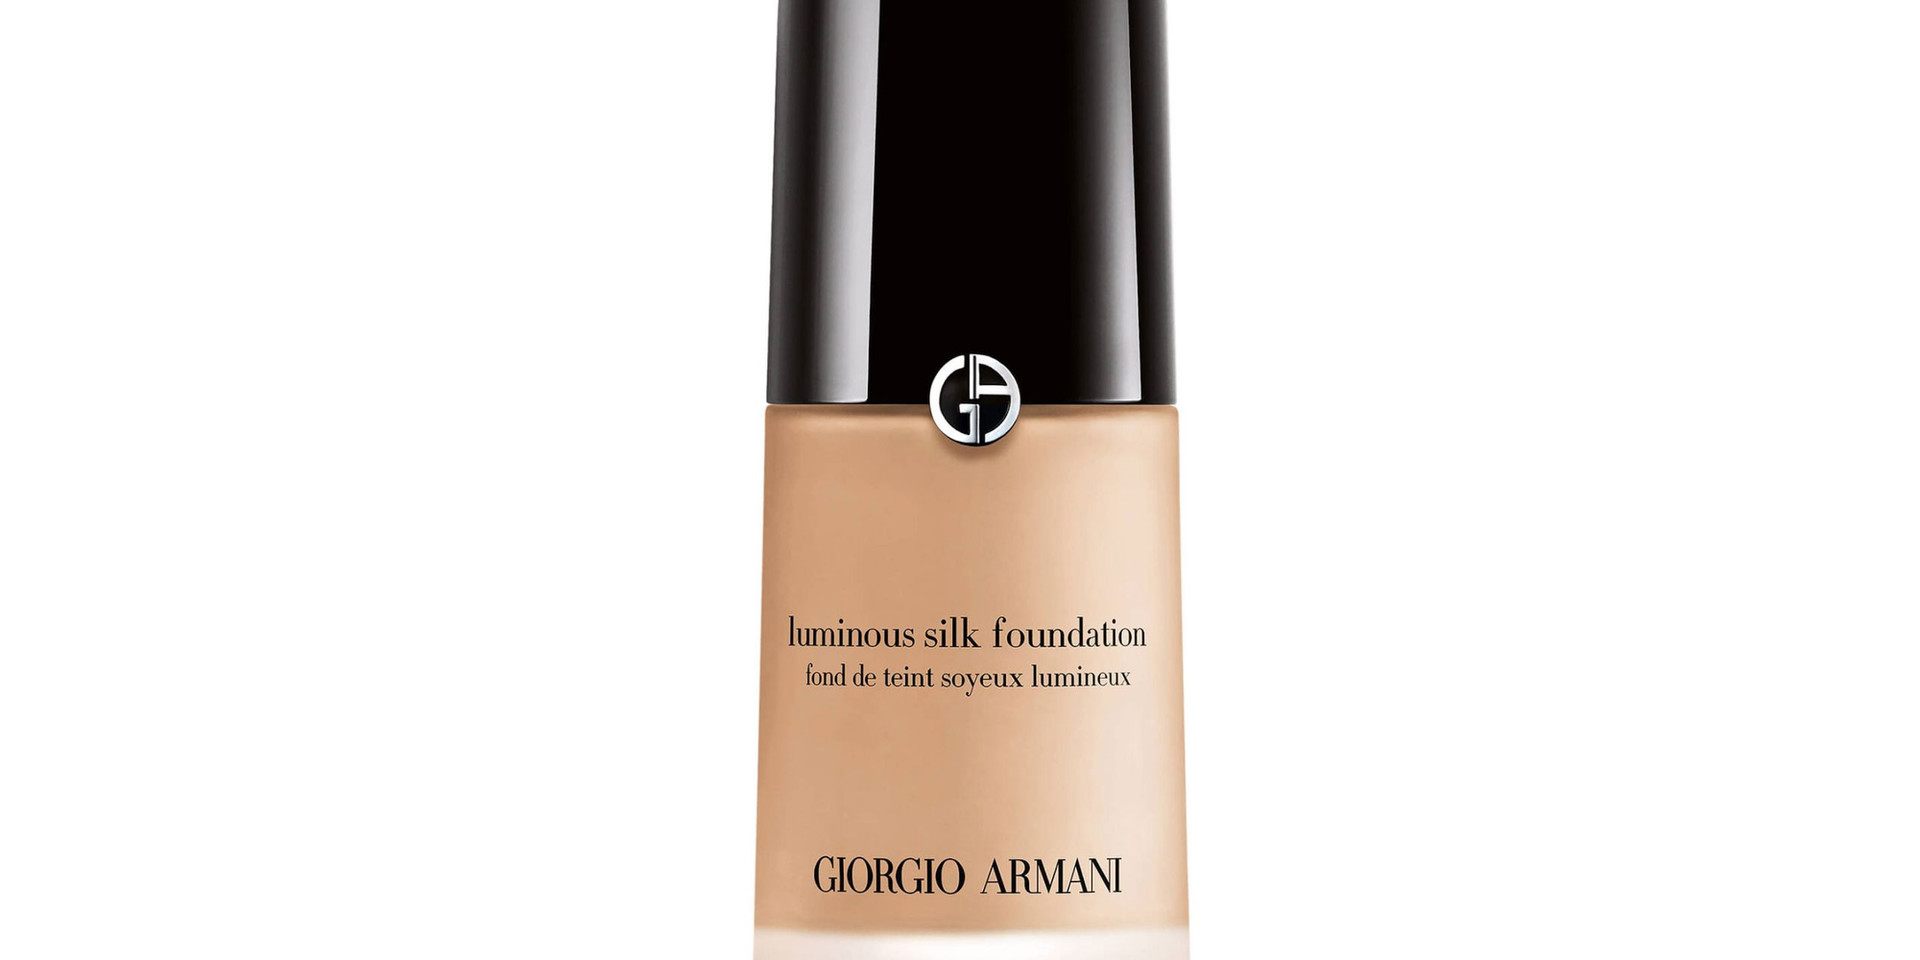 Giorgio Armani Luminous Silk: why we love this all-inclusive non-comedogenic foundation